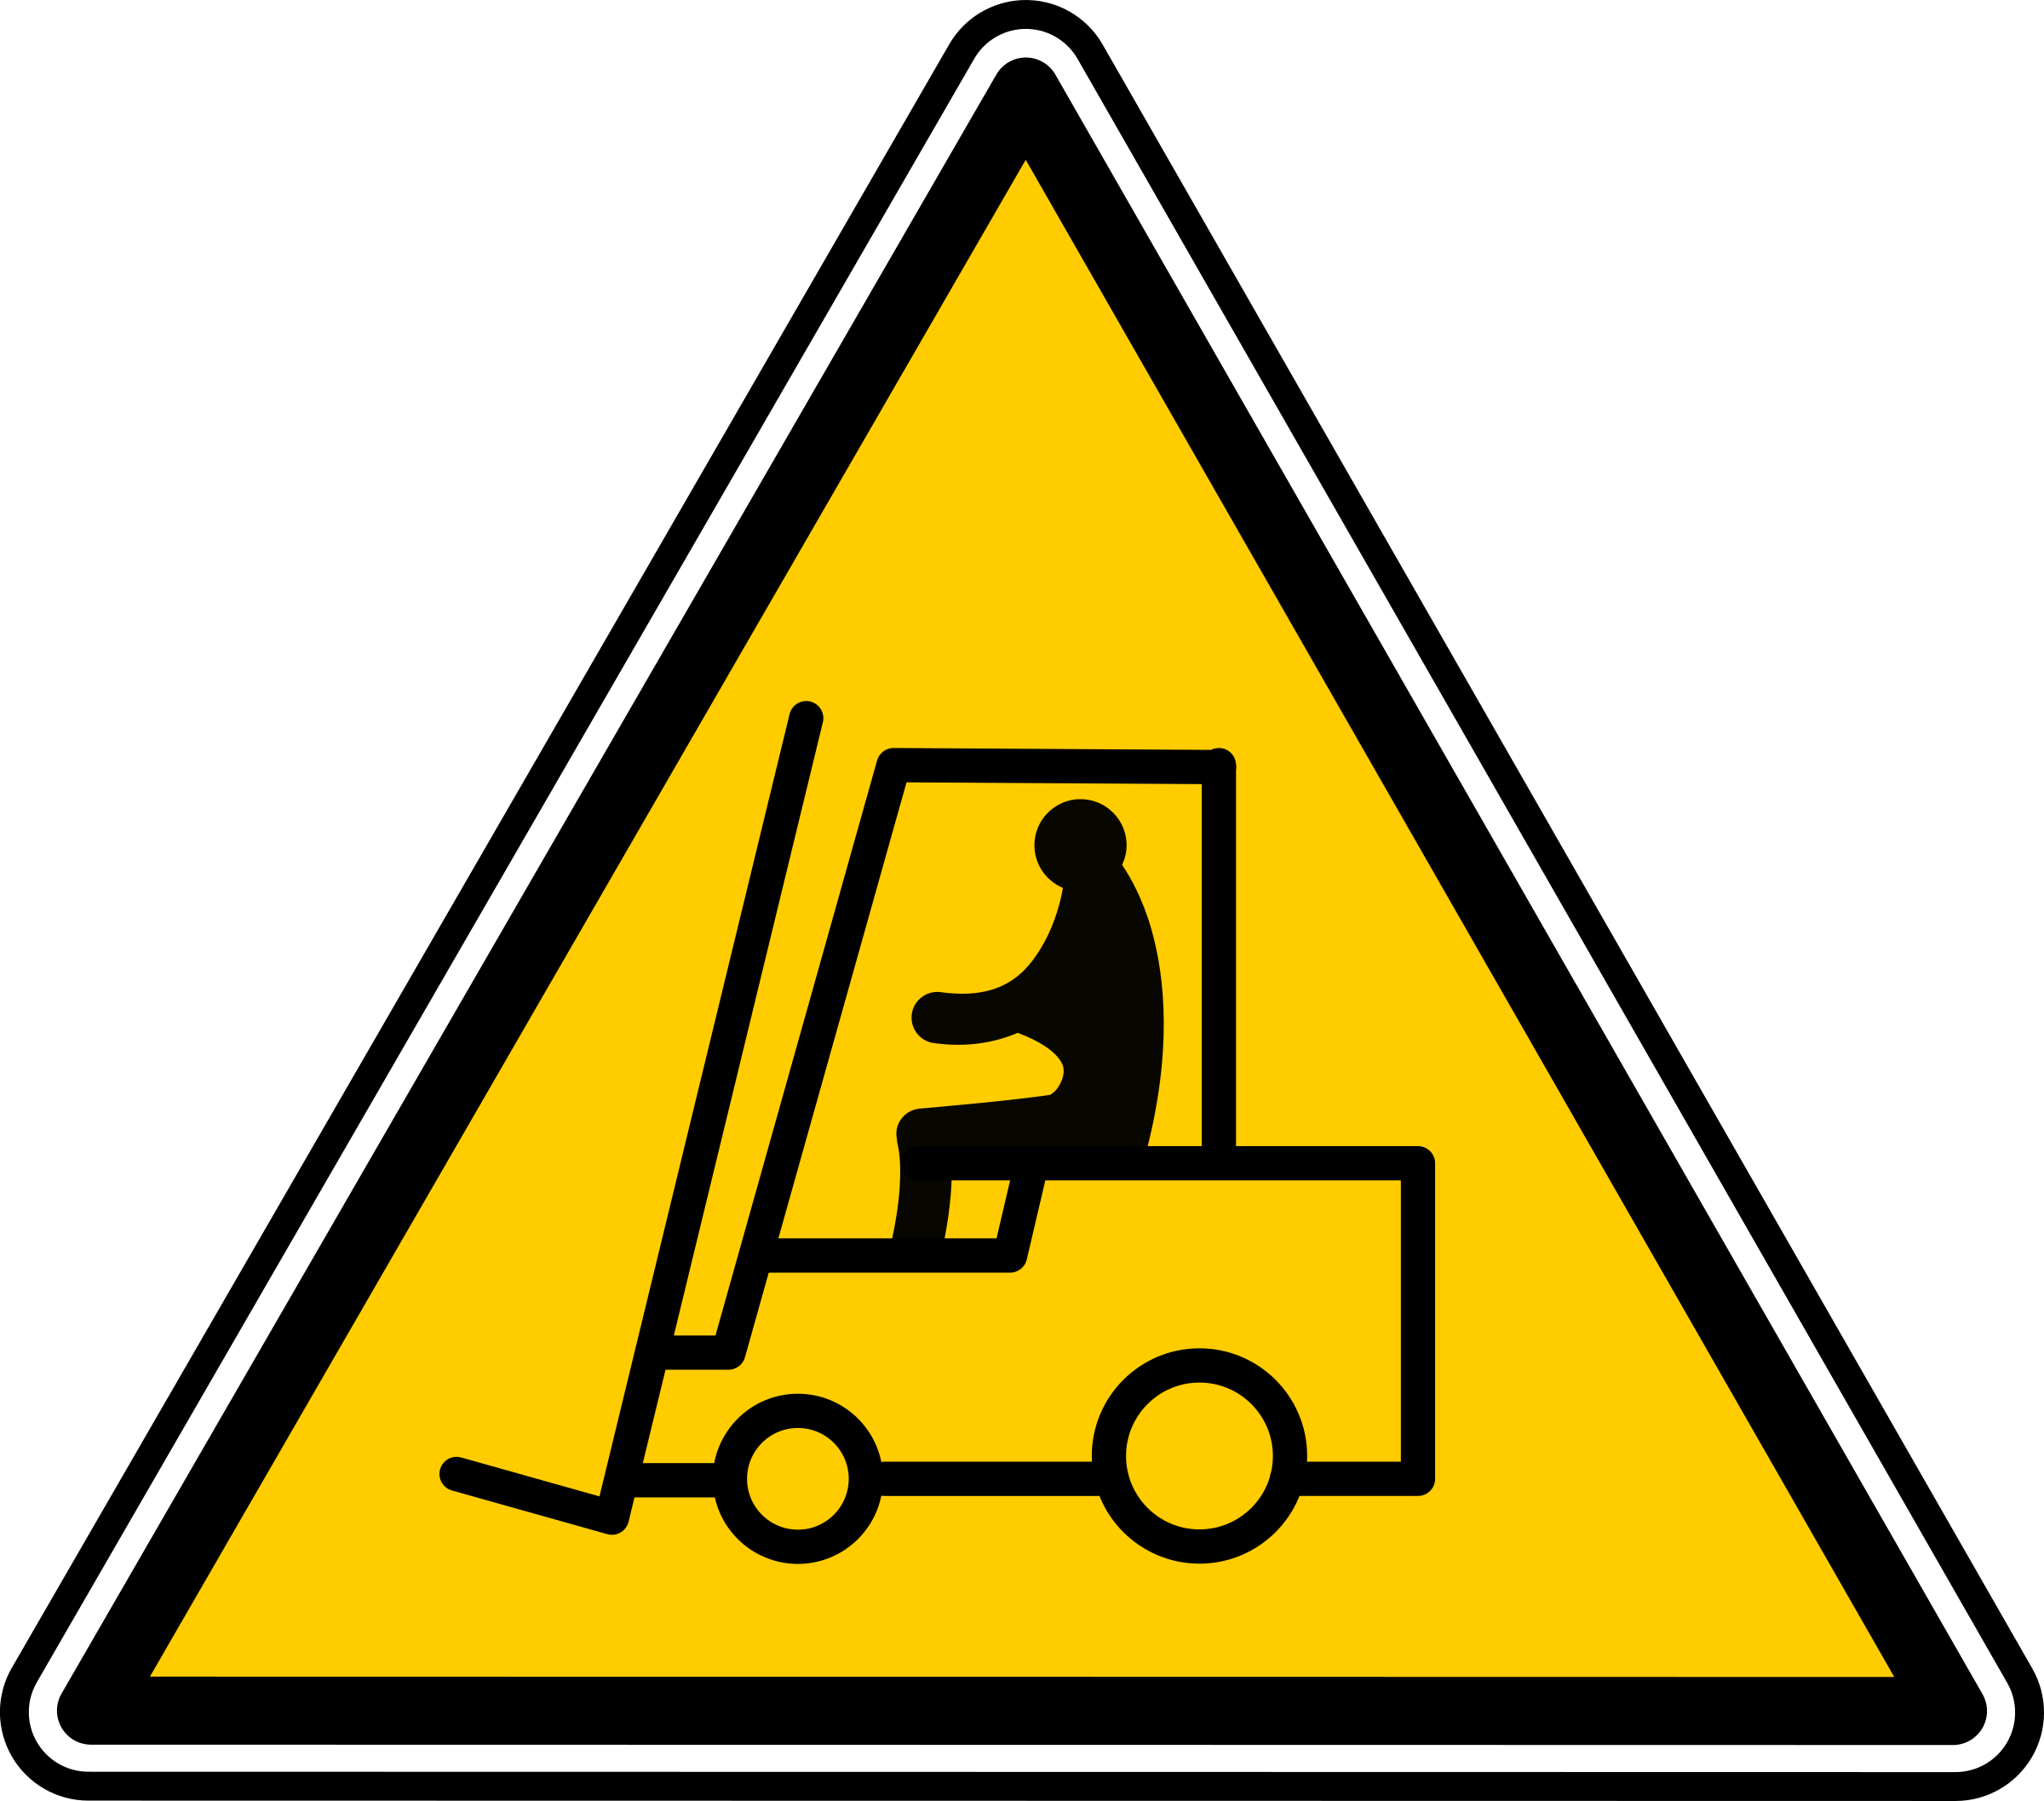 Forklift Warning by yves_guillou